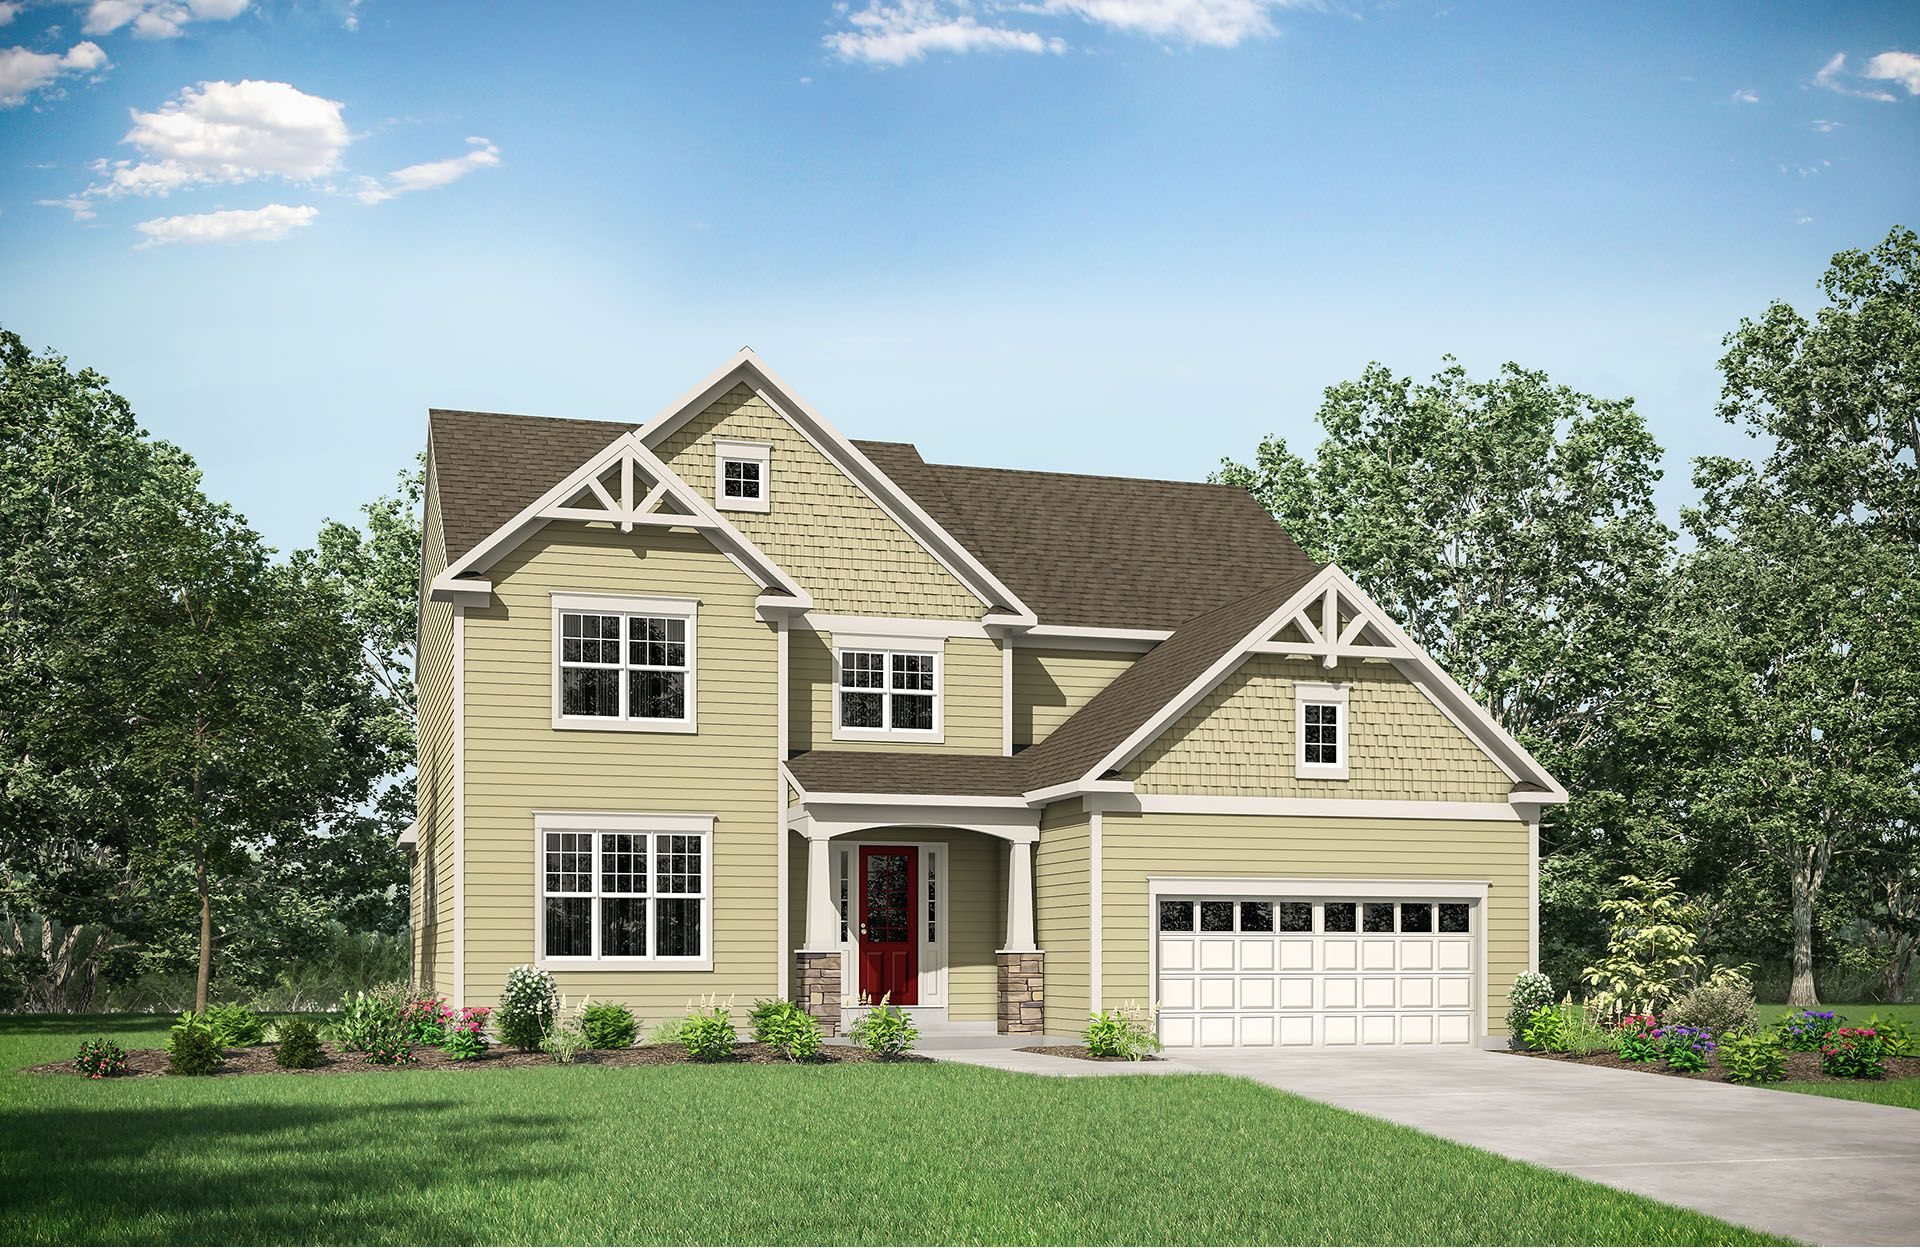 Single Family for Active at Estates At Rocky Pen - Rowan 85 Edgewater Drive Falmouth, Virginia 22405 United States